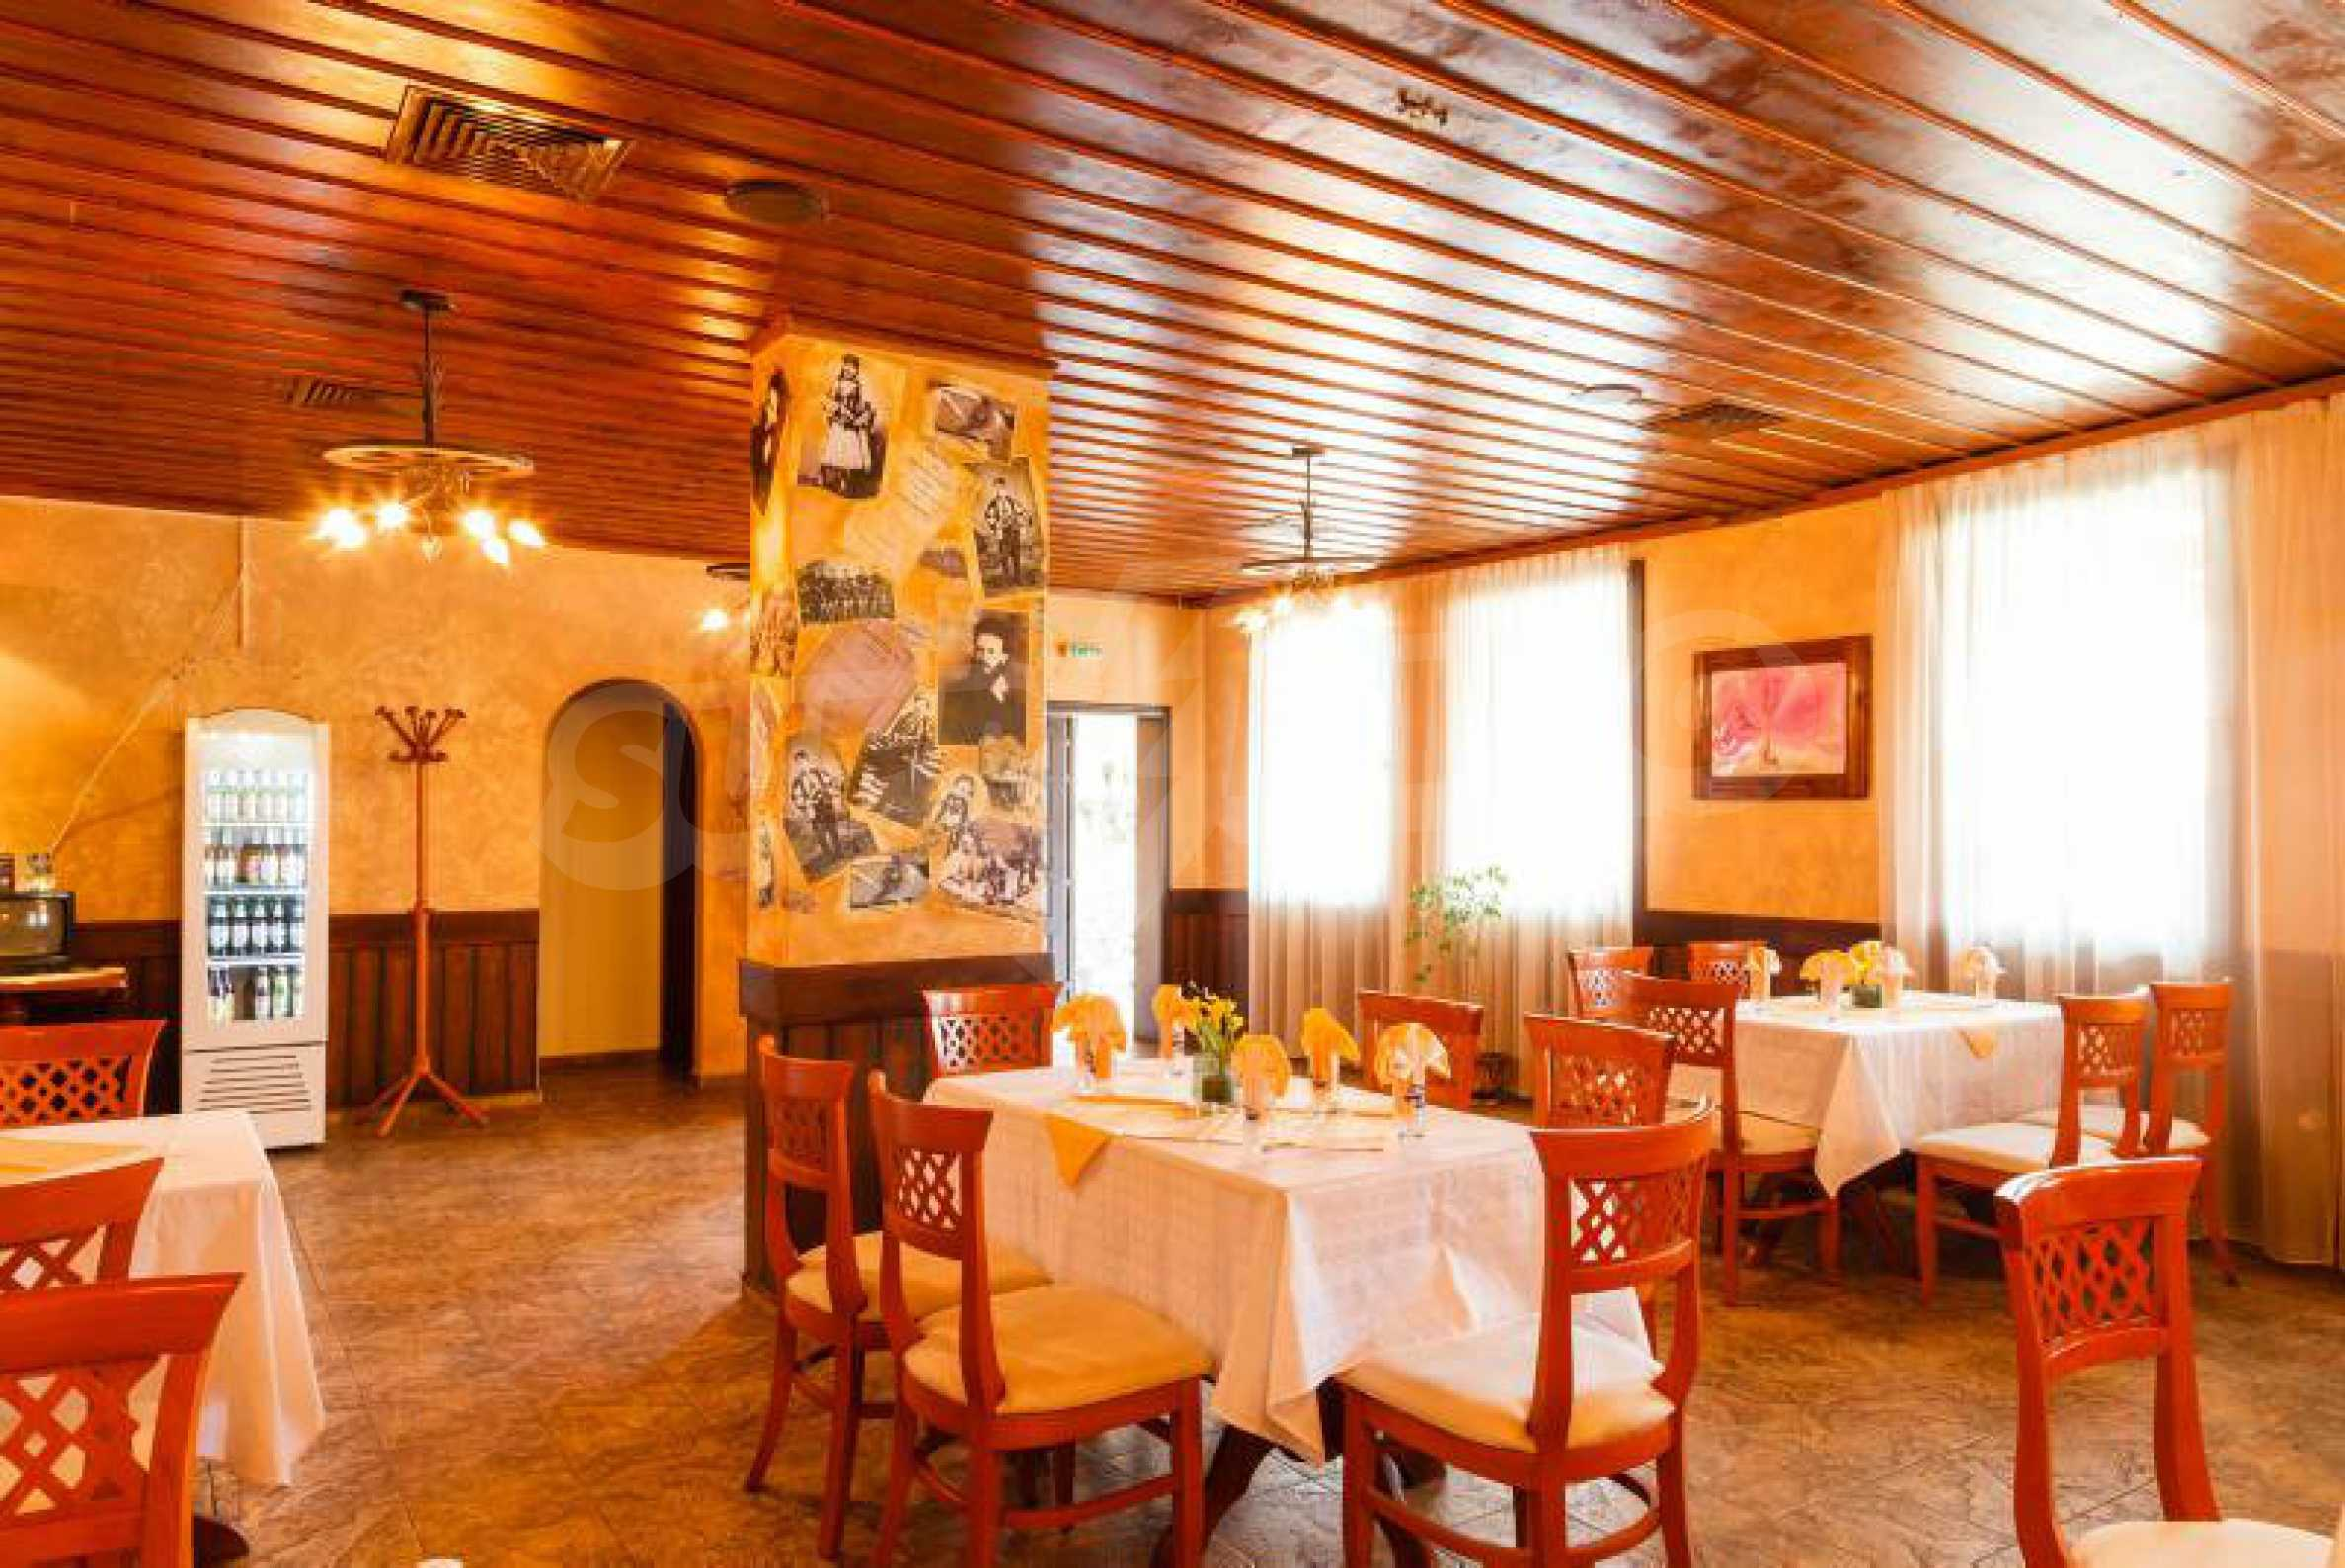 Fully equipped hotel, a restaurant, a house and a yard in the center of popular Arbanassi village 15